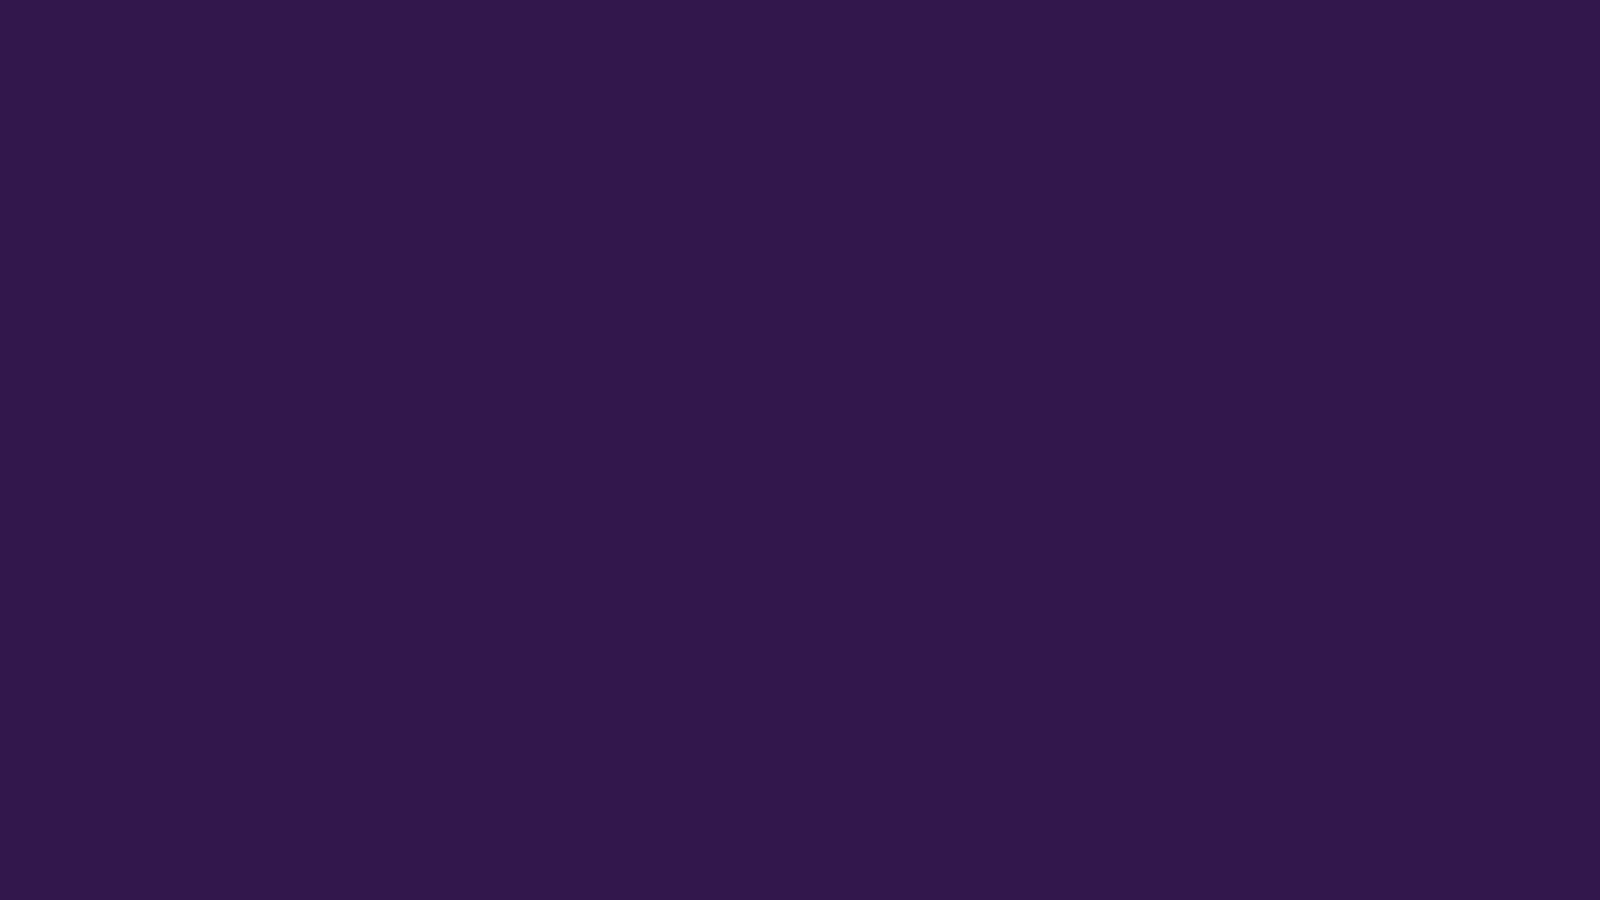 1600x900 Russian Violet Solid Color Background